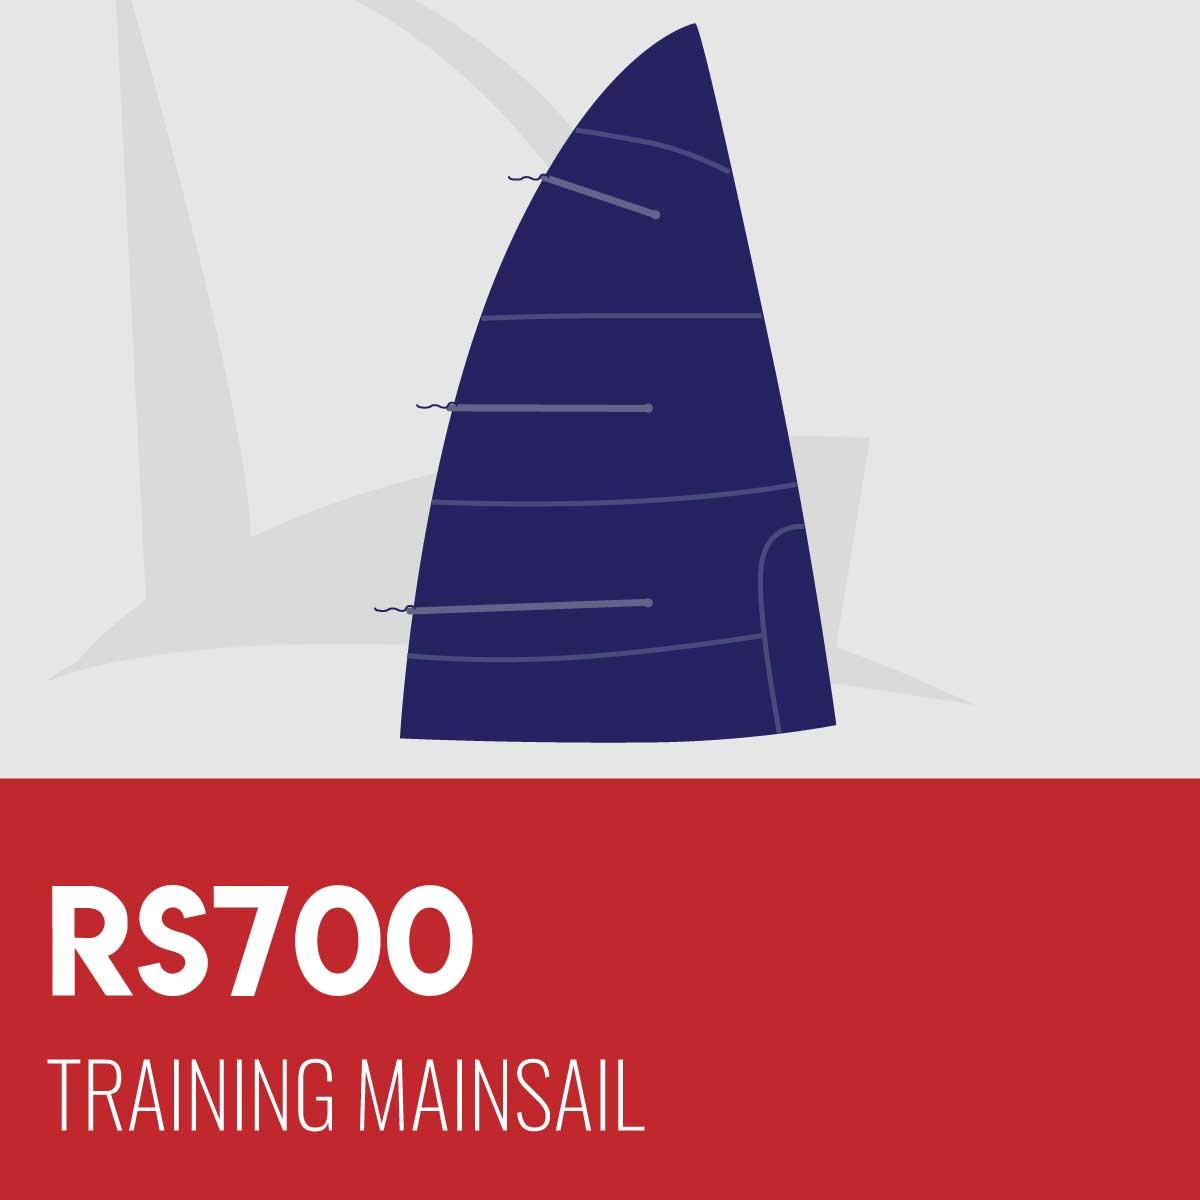 RS700 Training Mainsail